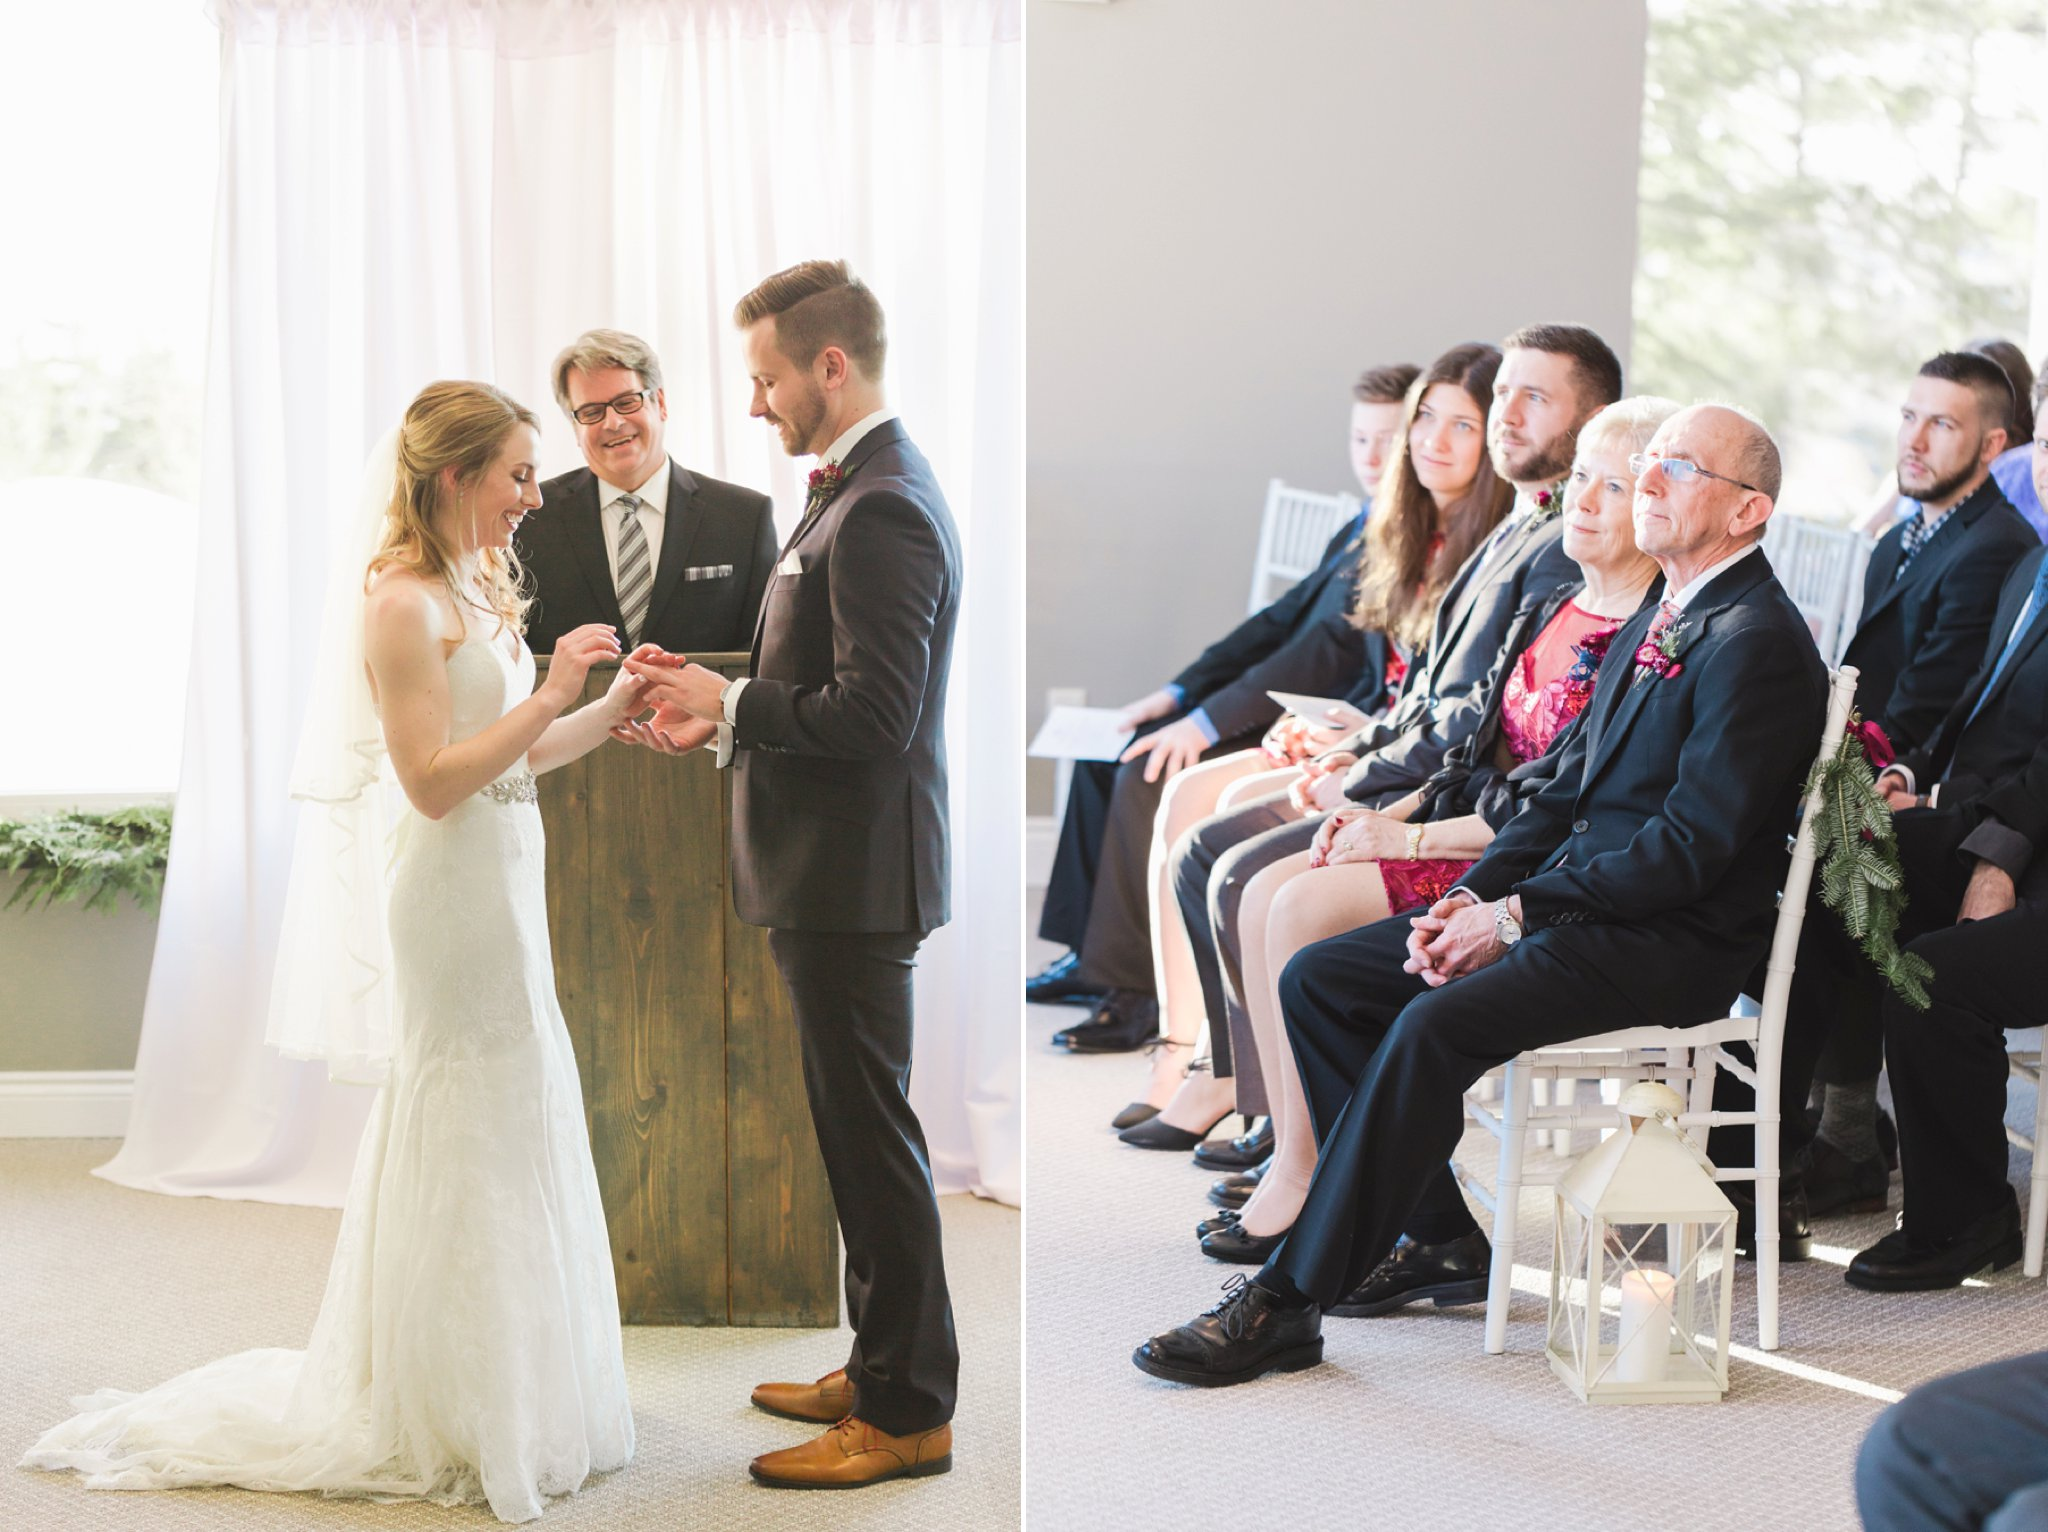 Indoor wedding ceremony at the Winter wedding at Le Belvedere